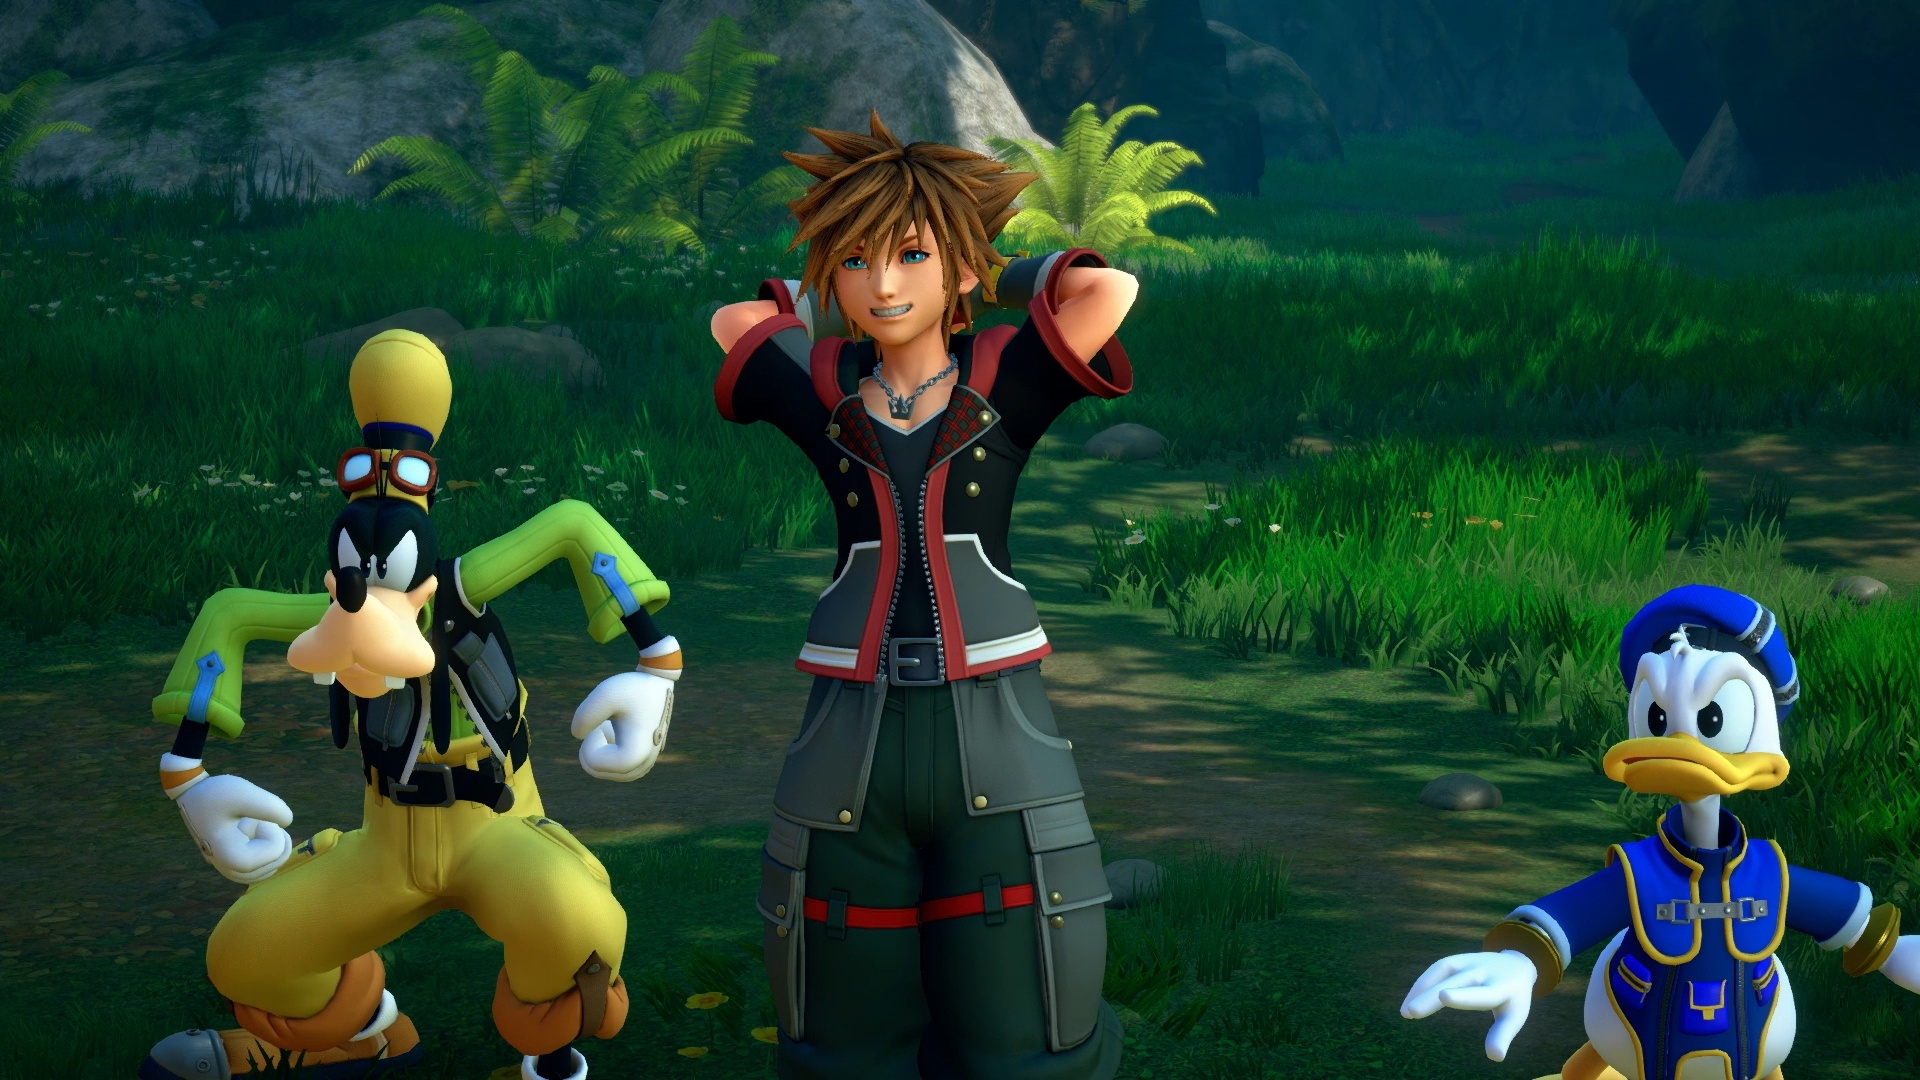 KINGDOM HEARTS III supera i 5 milioni di copie vendute